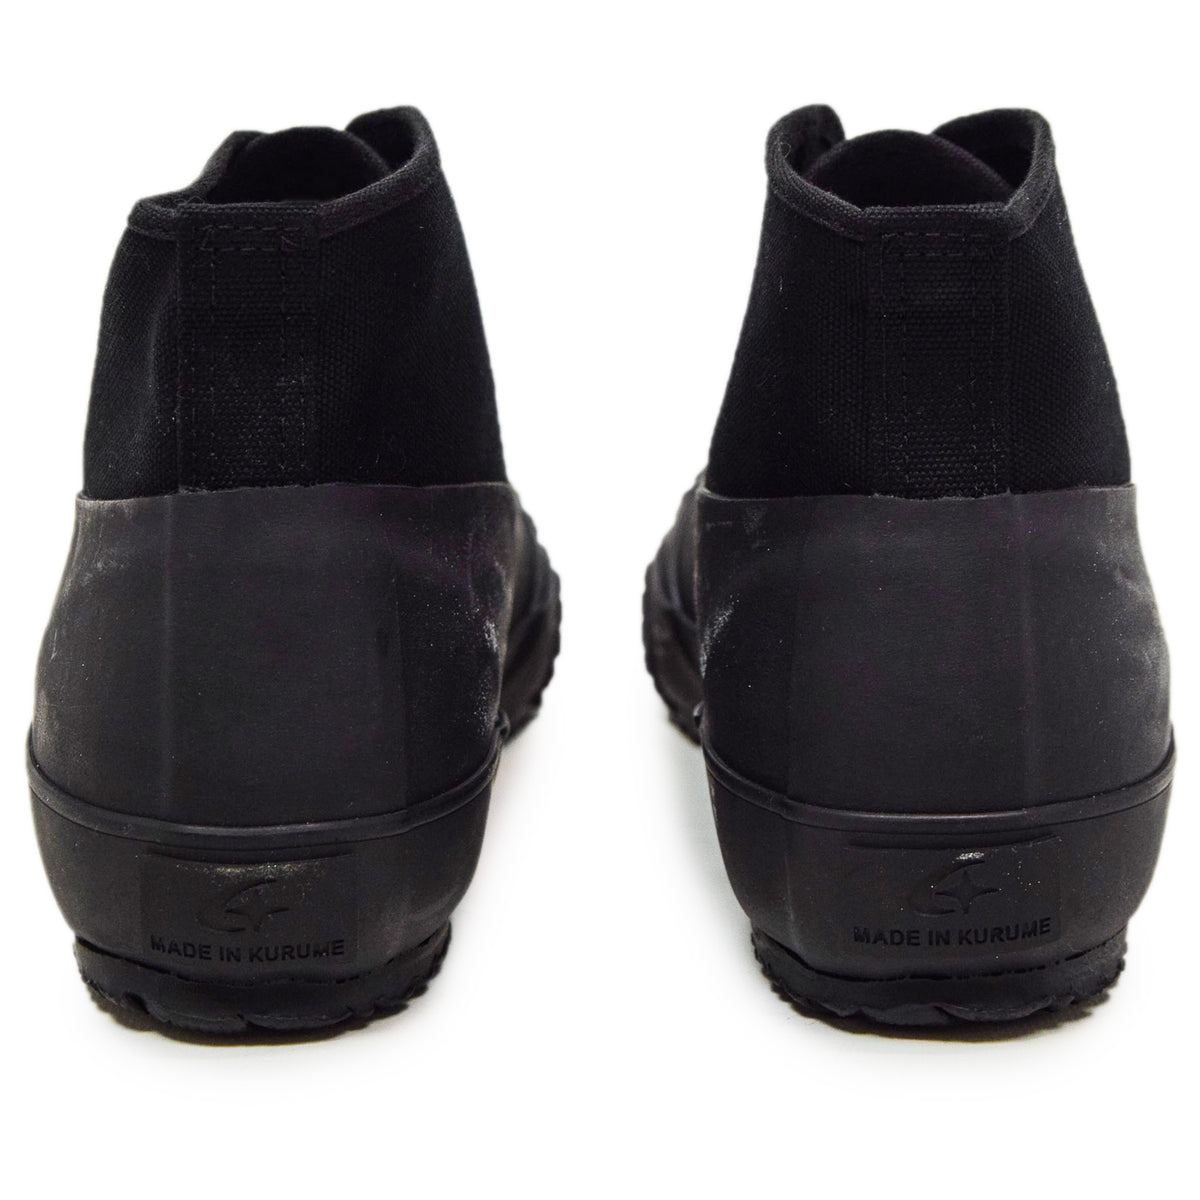 Moonstar Vulcanised Alweather Boot Black Made In Japan BACK